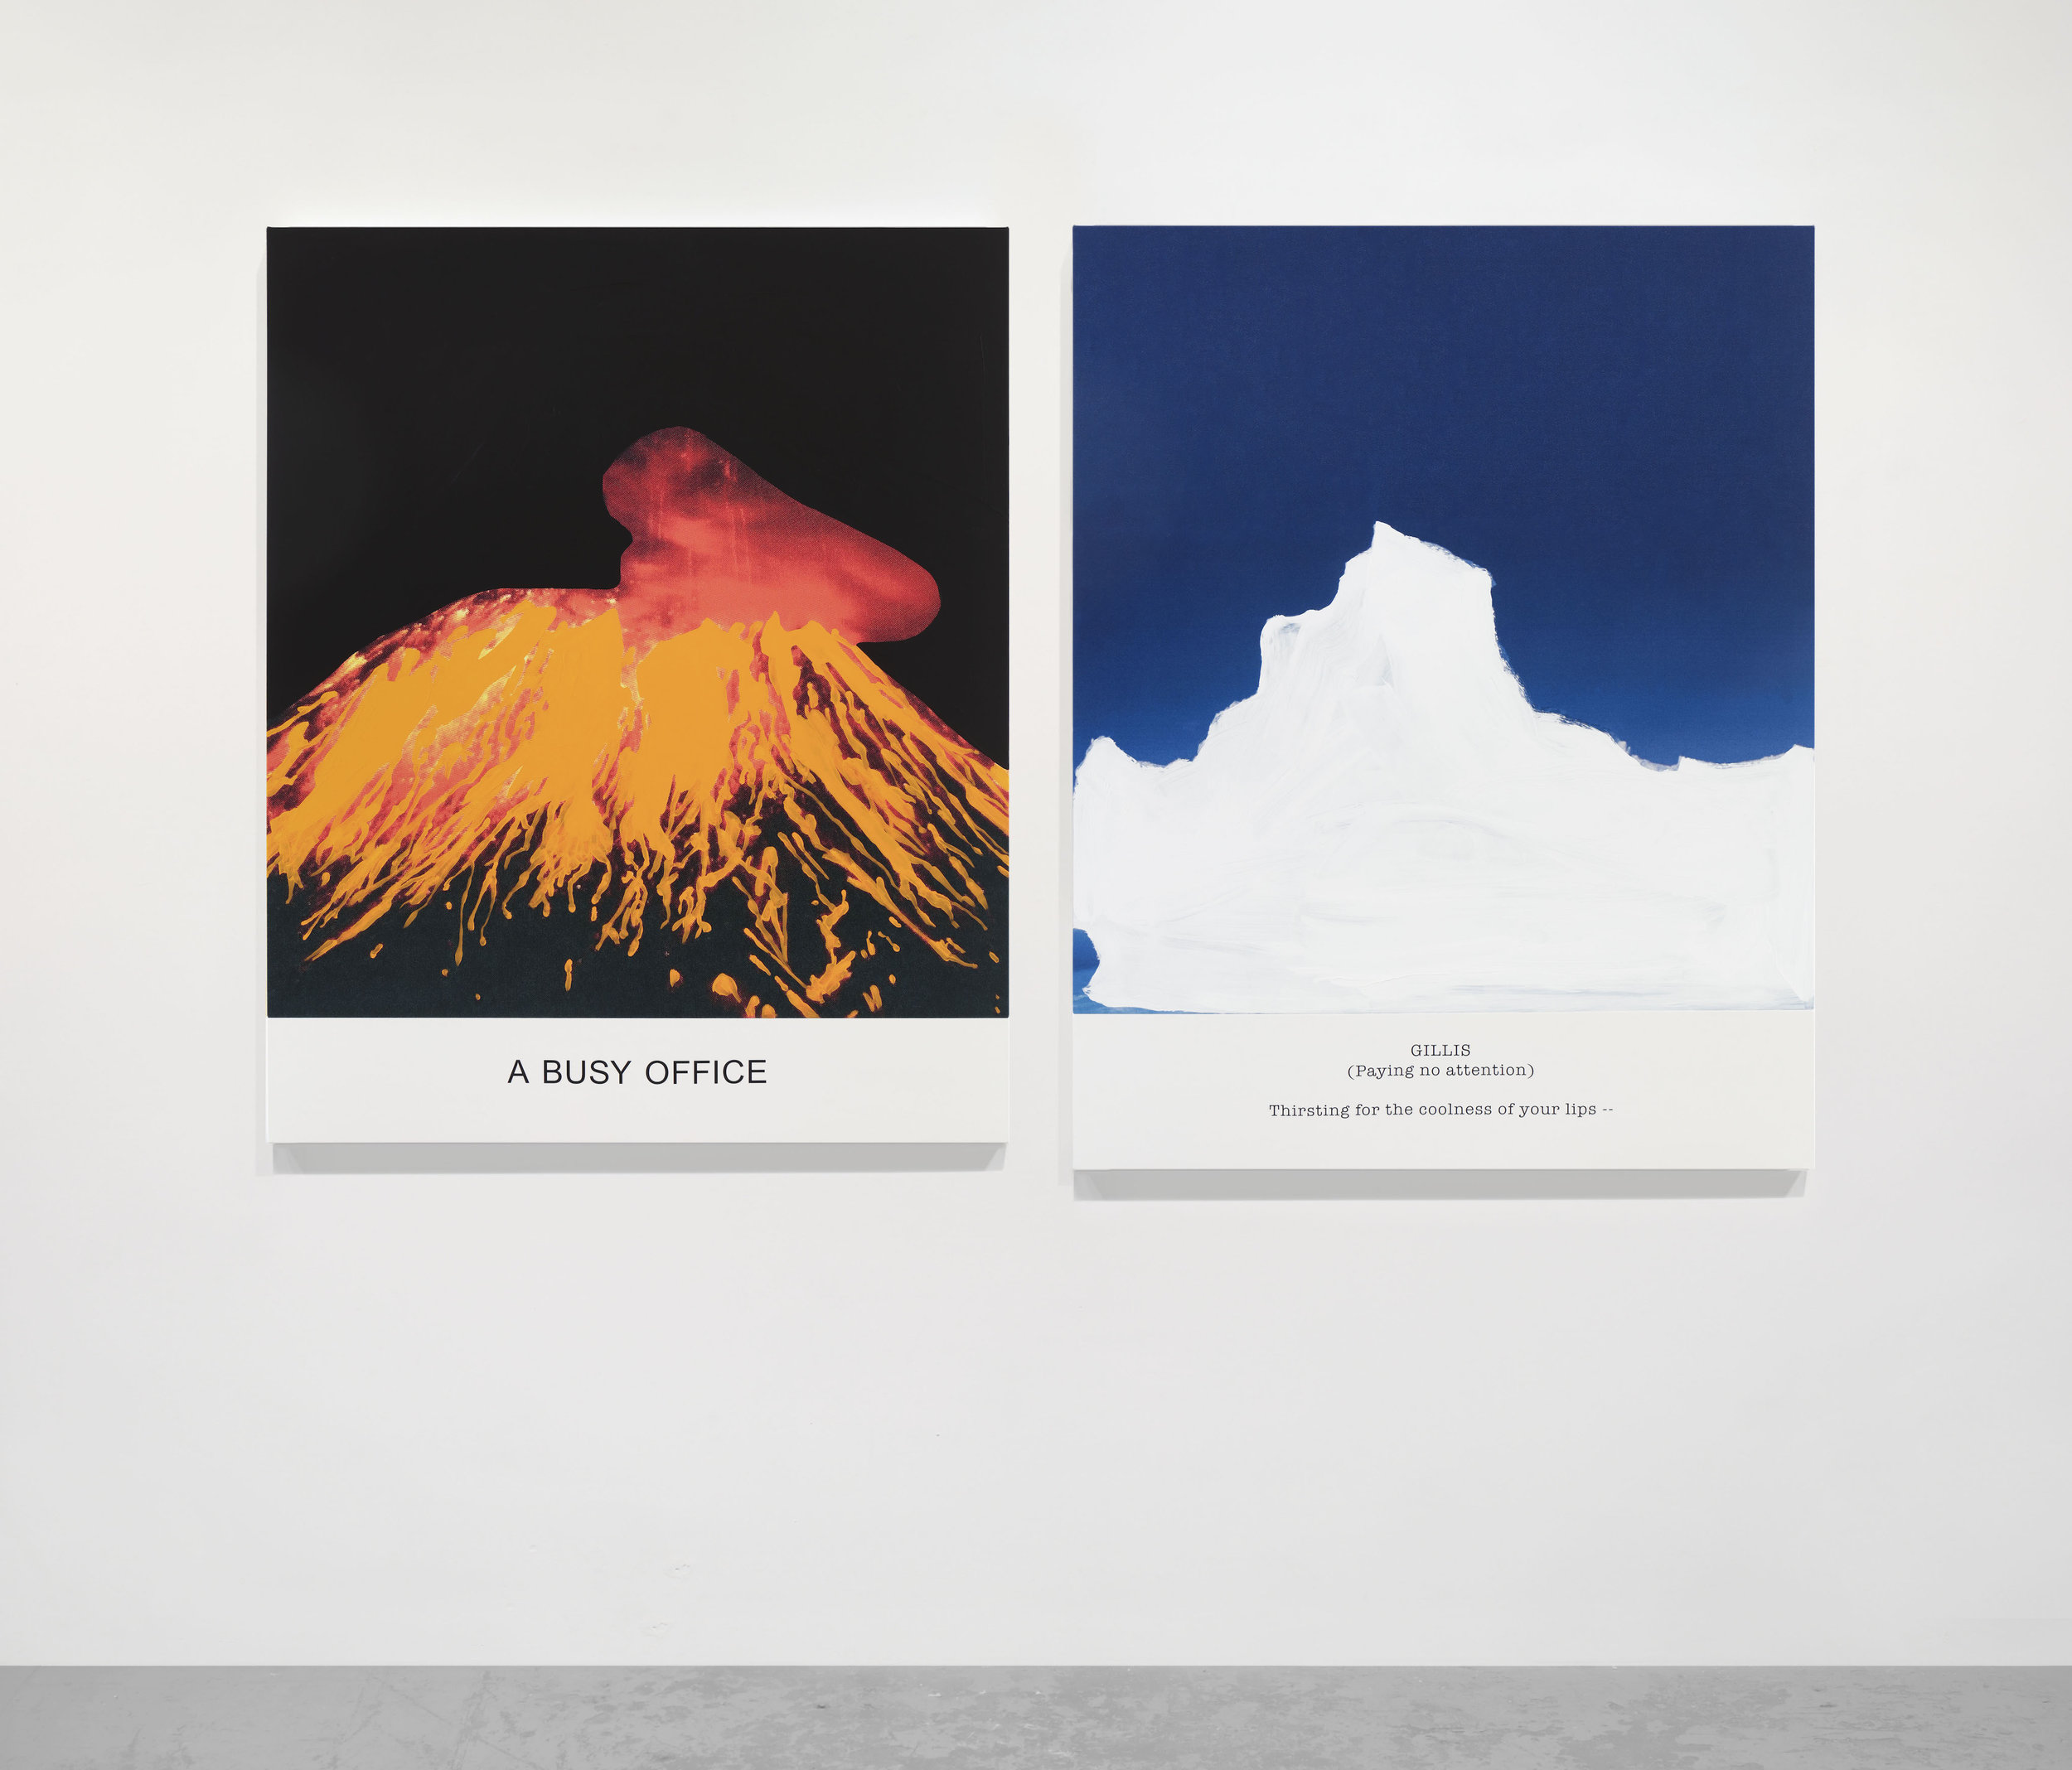 John Baldessari, Hot & Cold Series: A BUSY OFFICE, GILLIS (Paying no attention), 2018. Varnished inkjet prints on canvas with acrylic paint. Volcano: 55 1/2 x 45 x 1 1/2 in. (141 x 114.3 x 3.8 cm). Iceberg: 57 3/8 x 45 x 1 1/2 in. (145.7 x 114.3 x 3.8 cm) (22370). Courtesy of Marian Goodman Gallery